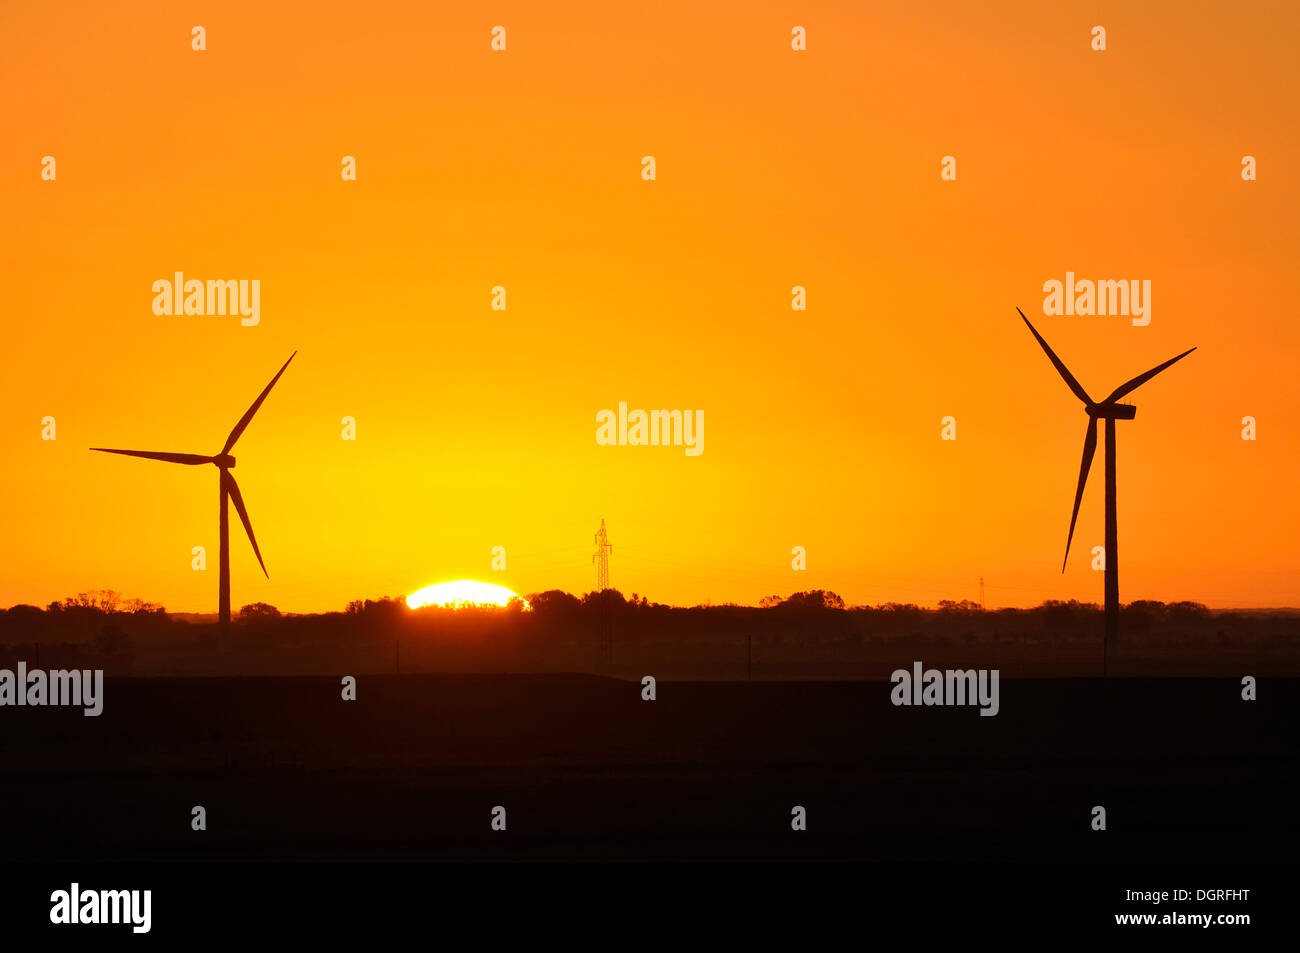 Nuclear dawn, wind power plant and transmission line in front of a sunrise, Eiderstedt, Schleswig-Holstein - Stock Image